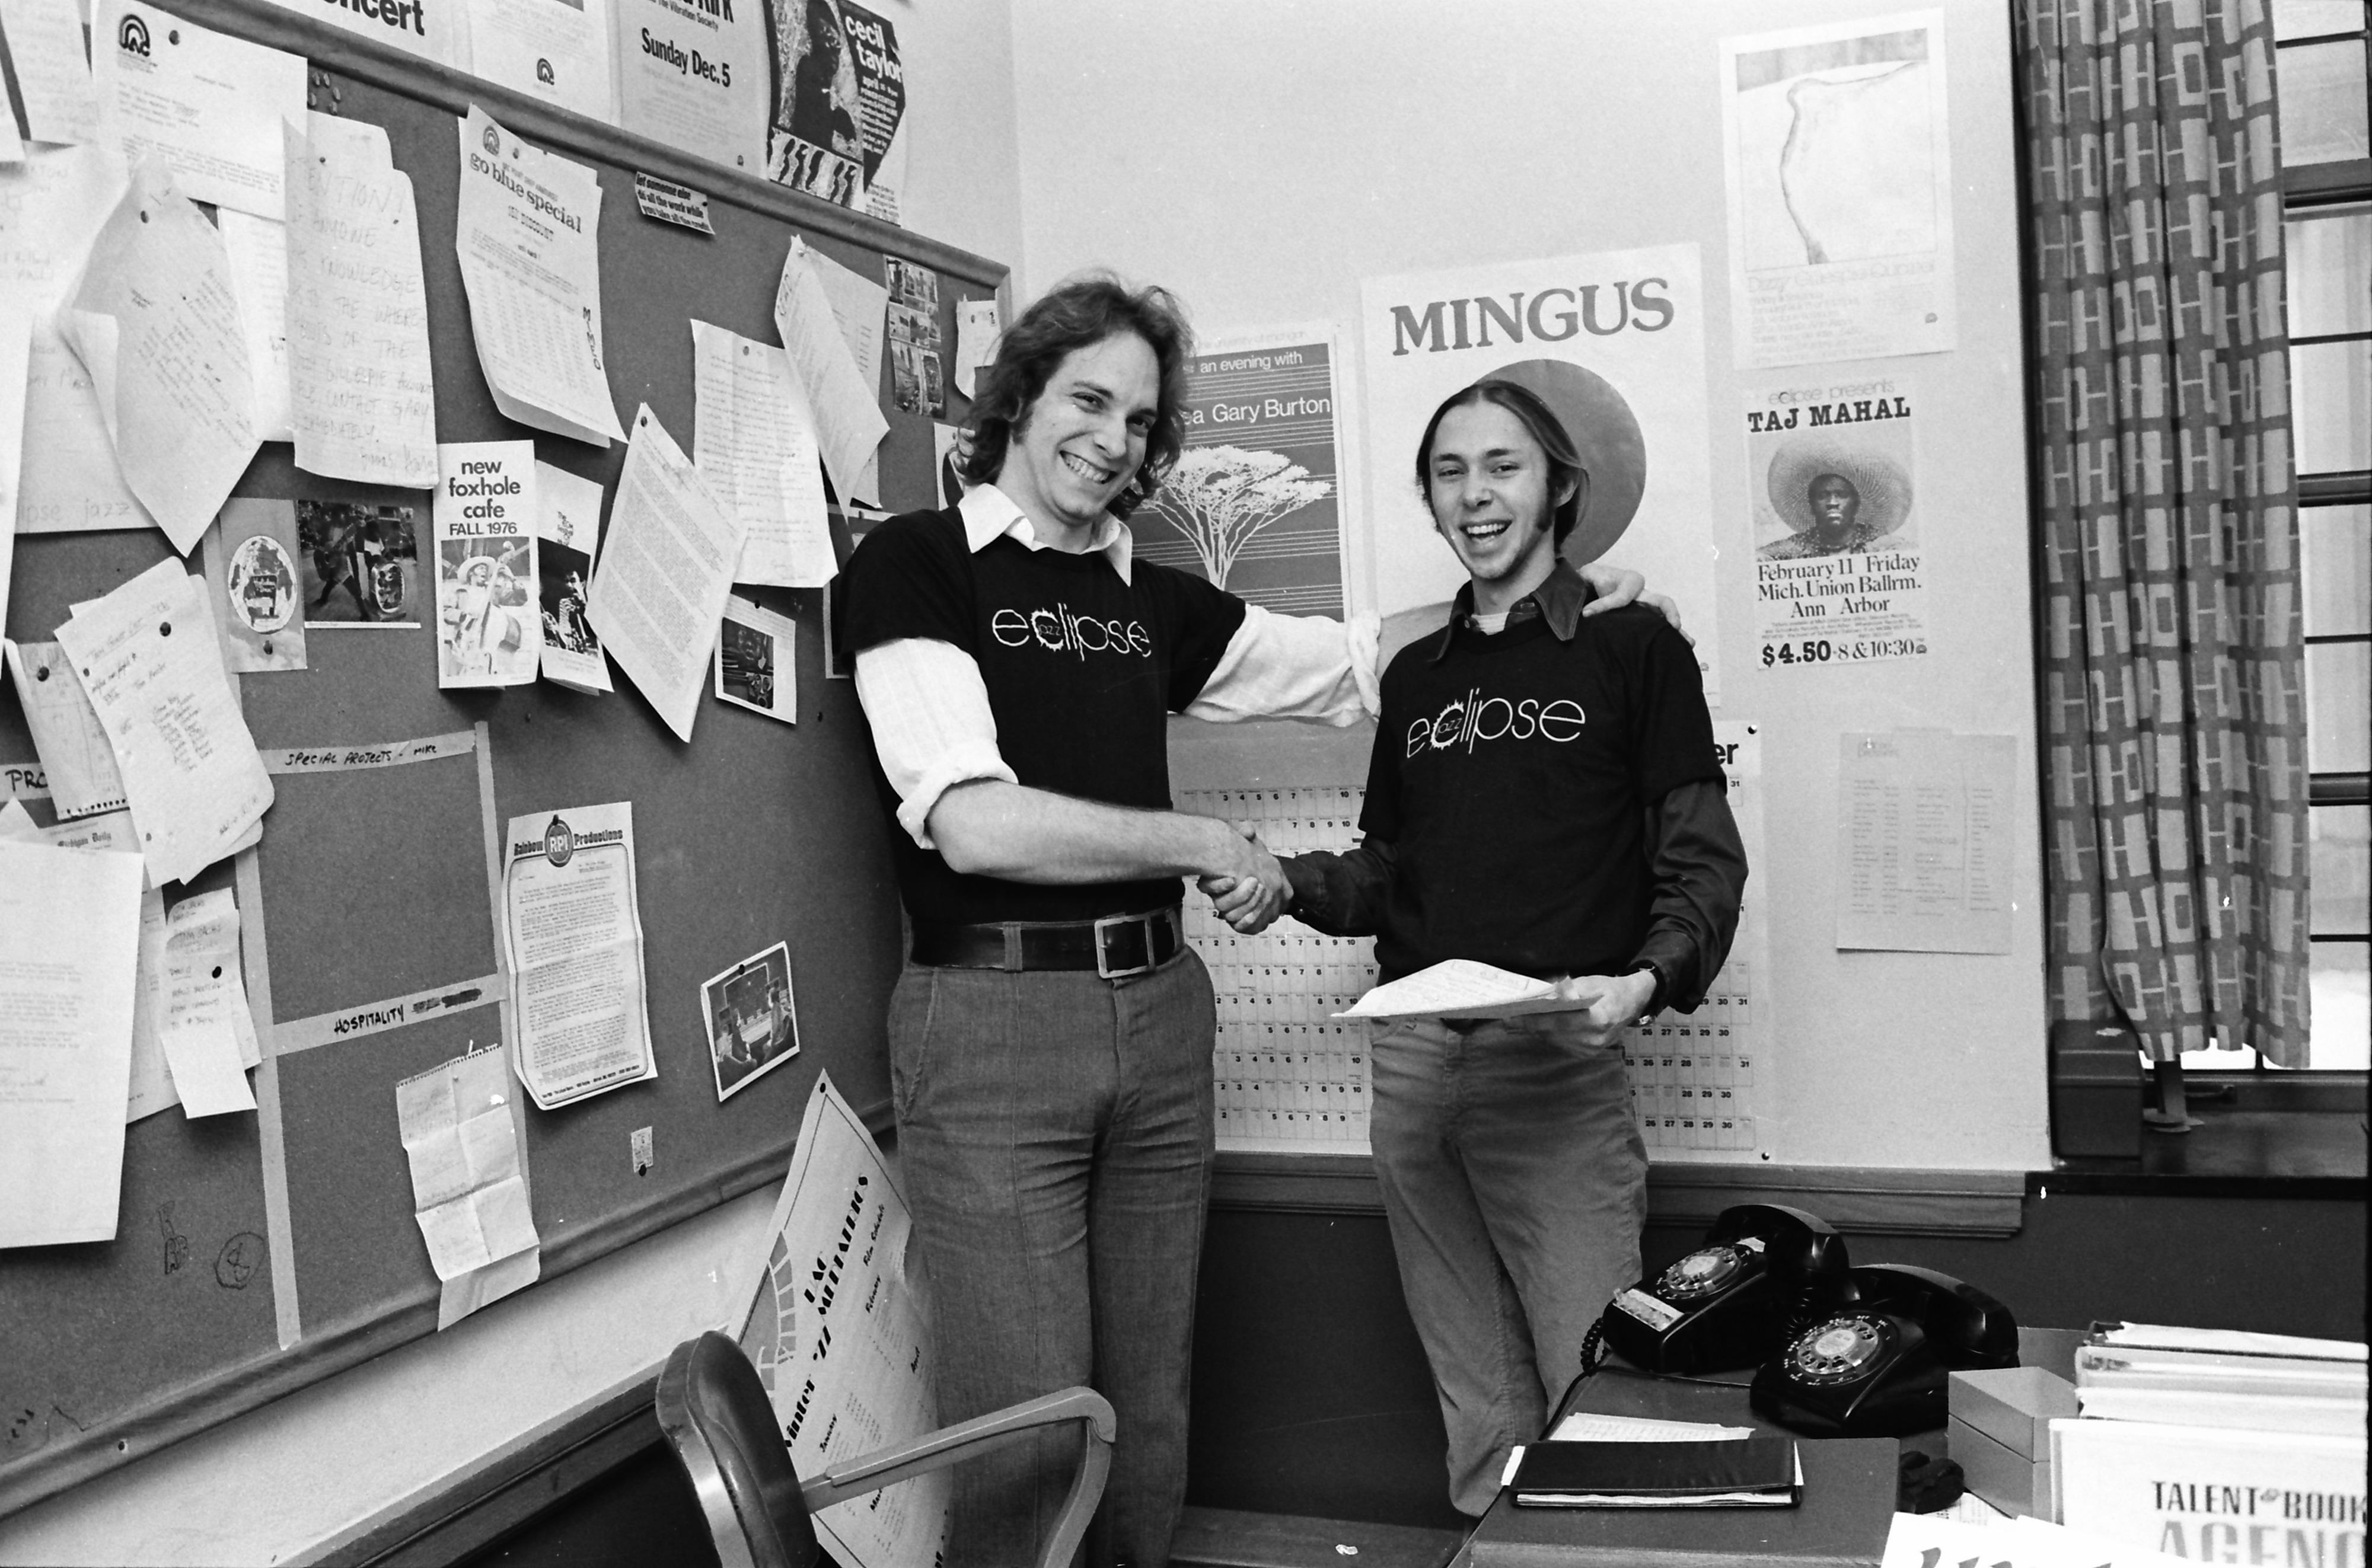 Lee Berry and Mike Grofsorean, February 1977 image